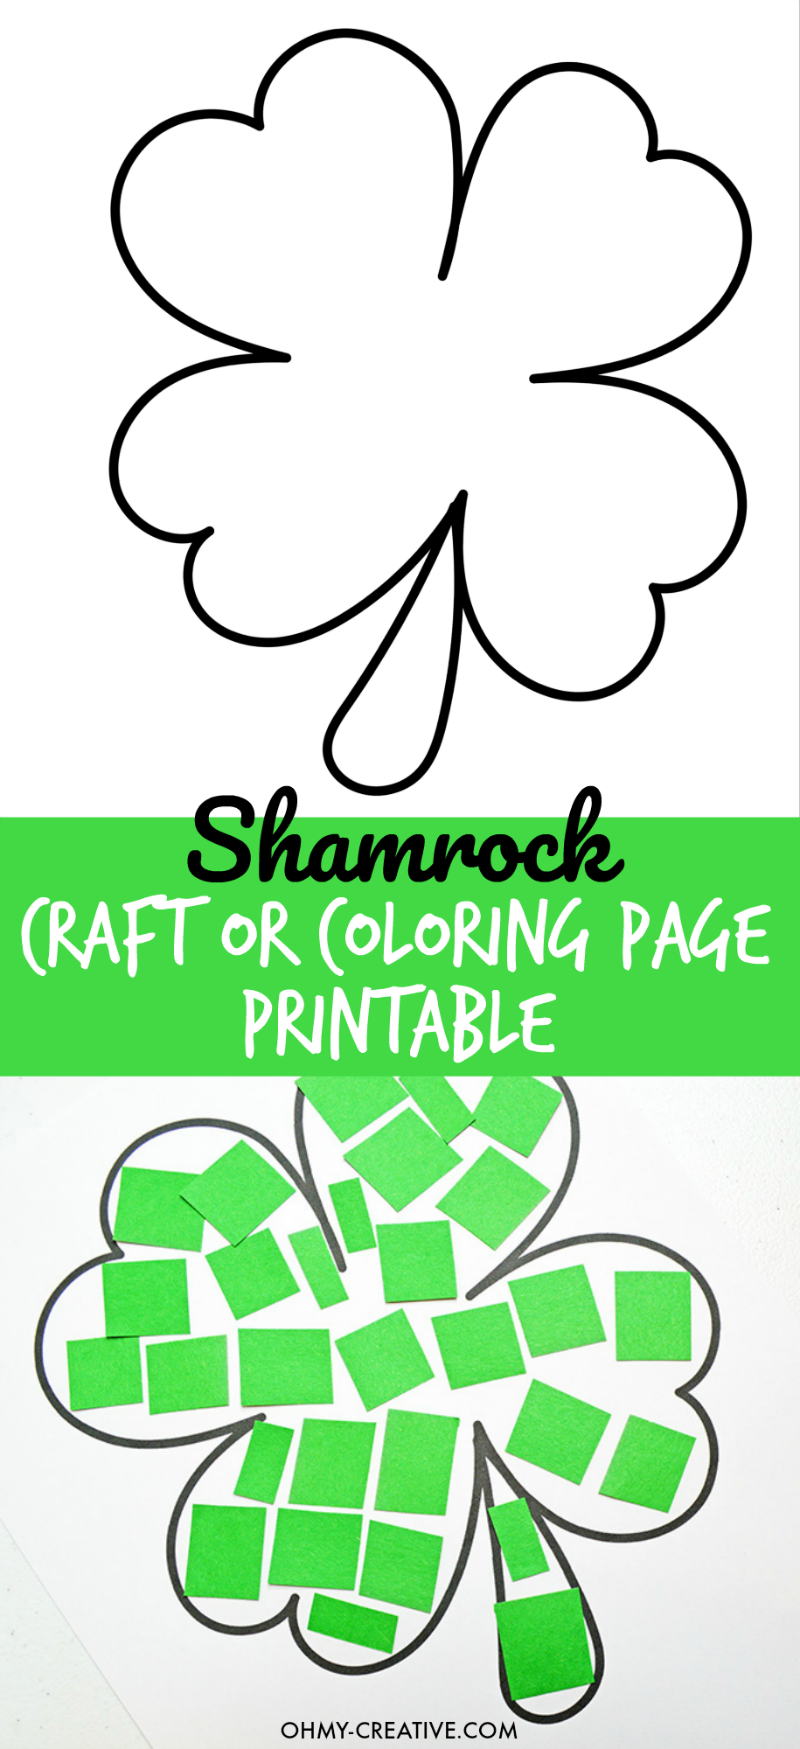 Cut And Paste Shamrock Template or Coloring Page | Pinterest ...